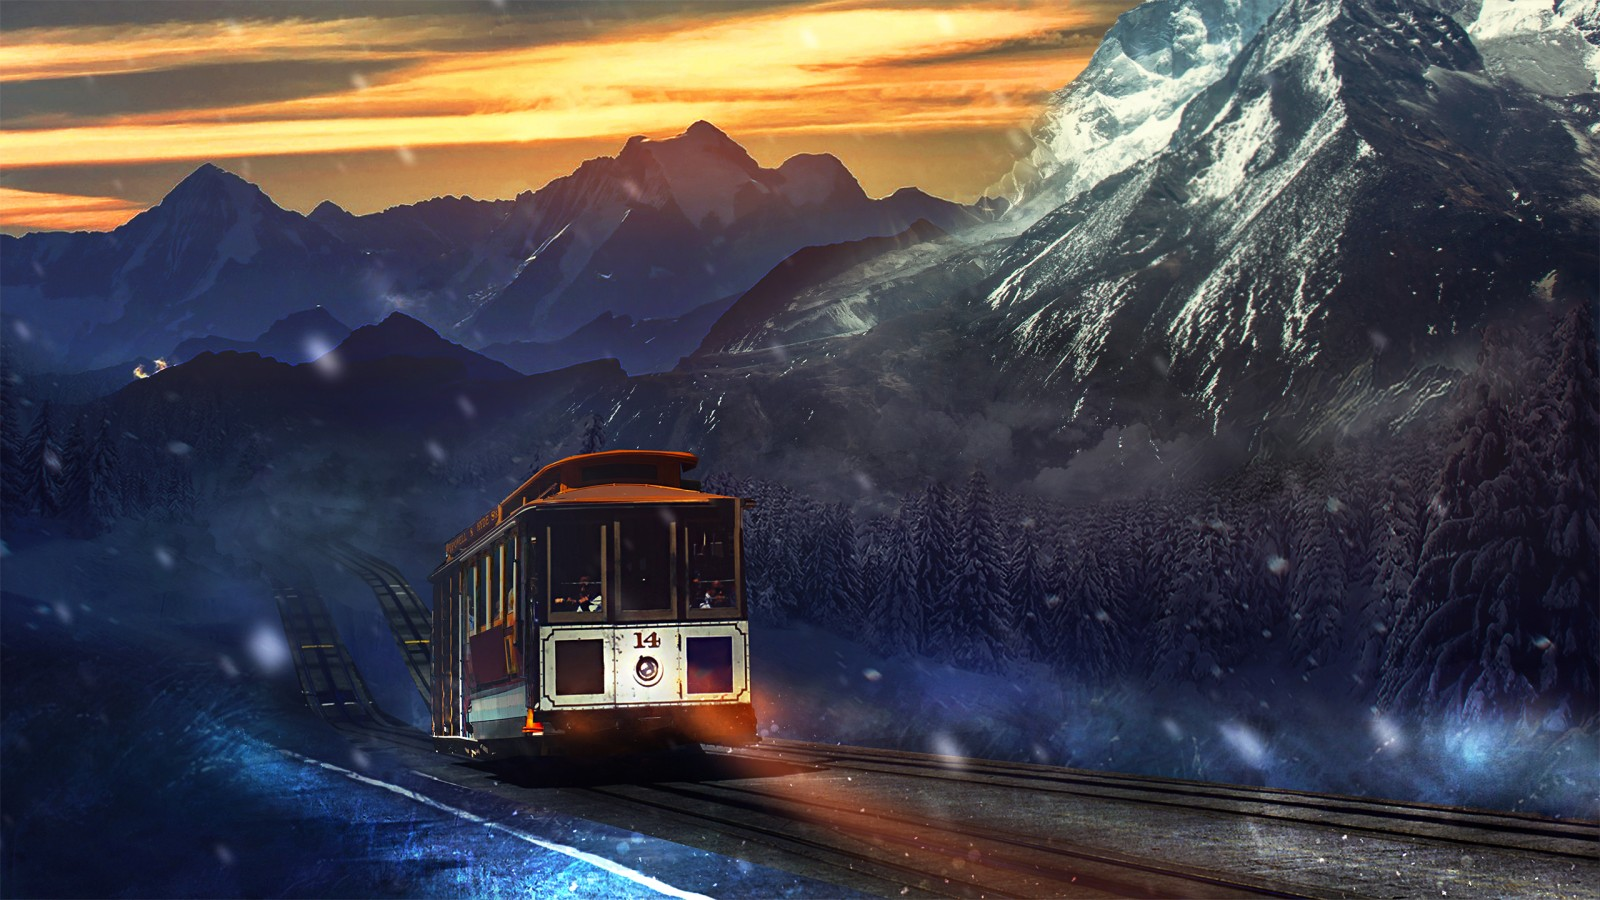 Fortnite 3d Wallpapers Train Journey Mountains Wallpapers Hd Wallpapers Id 16176